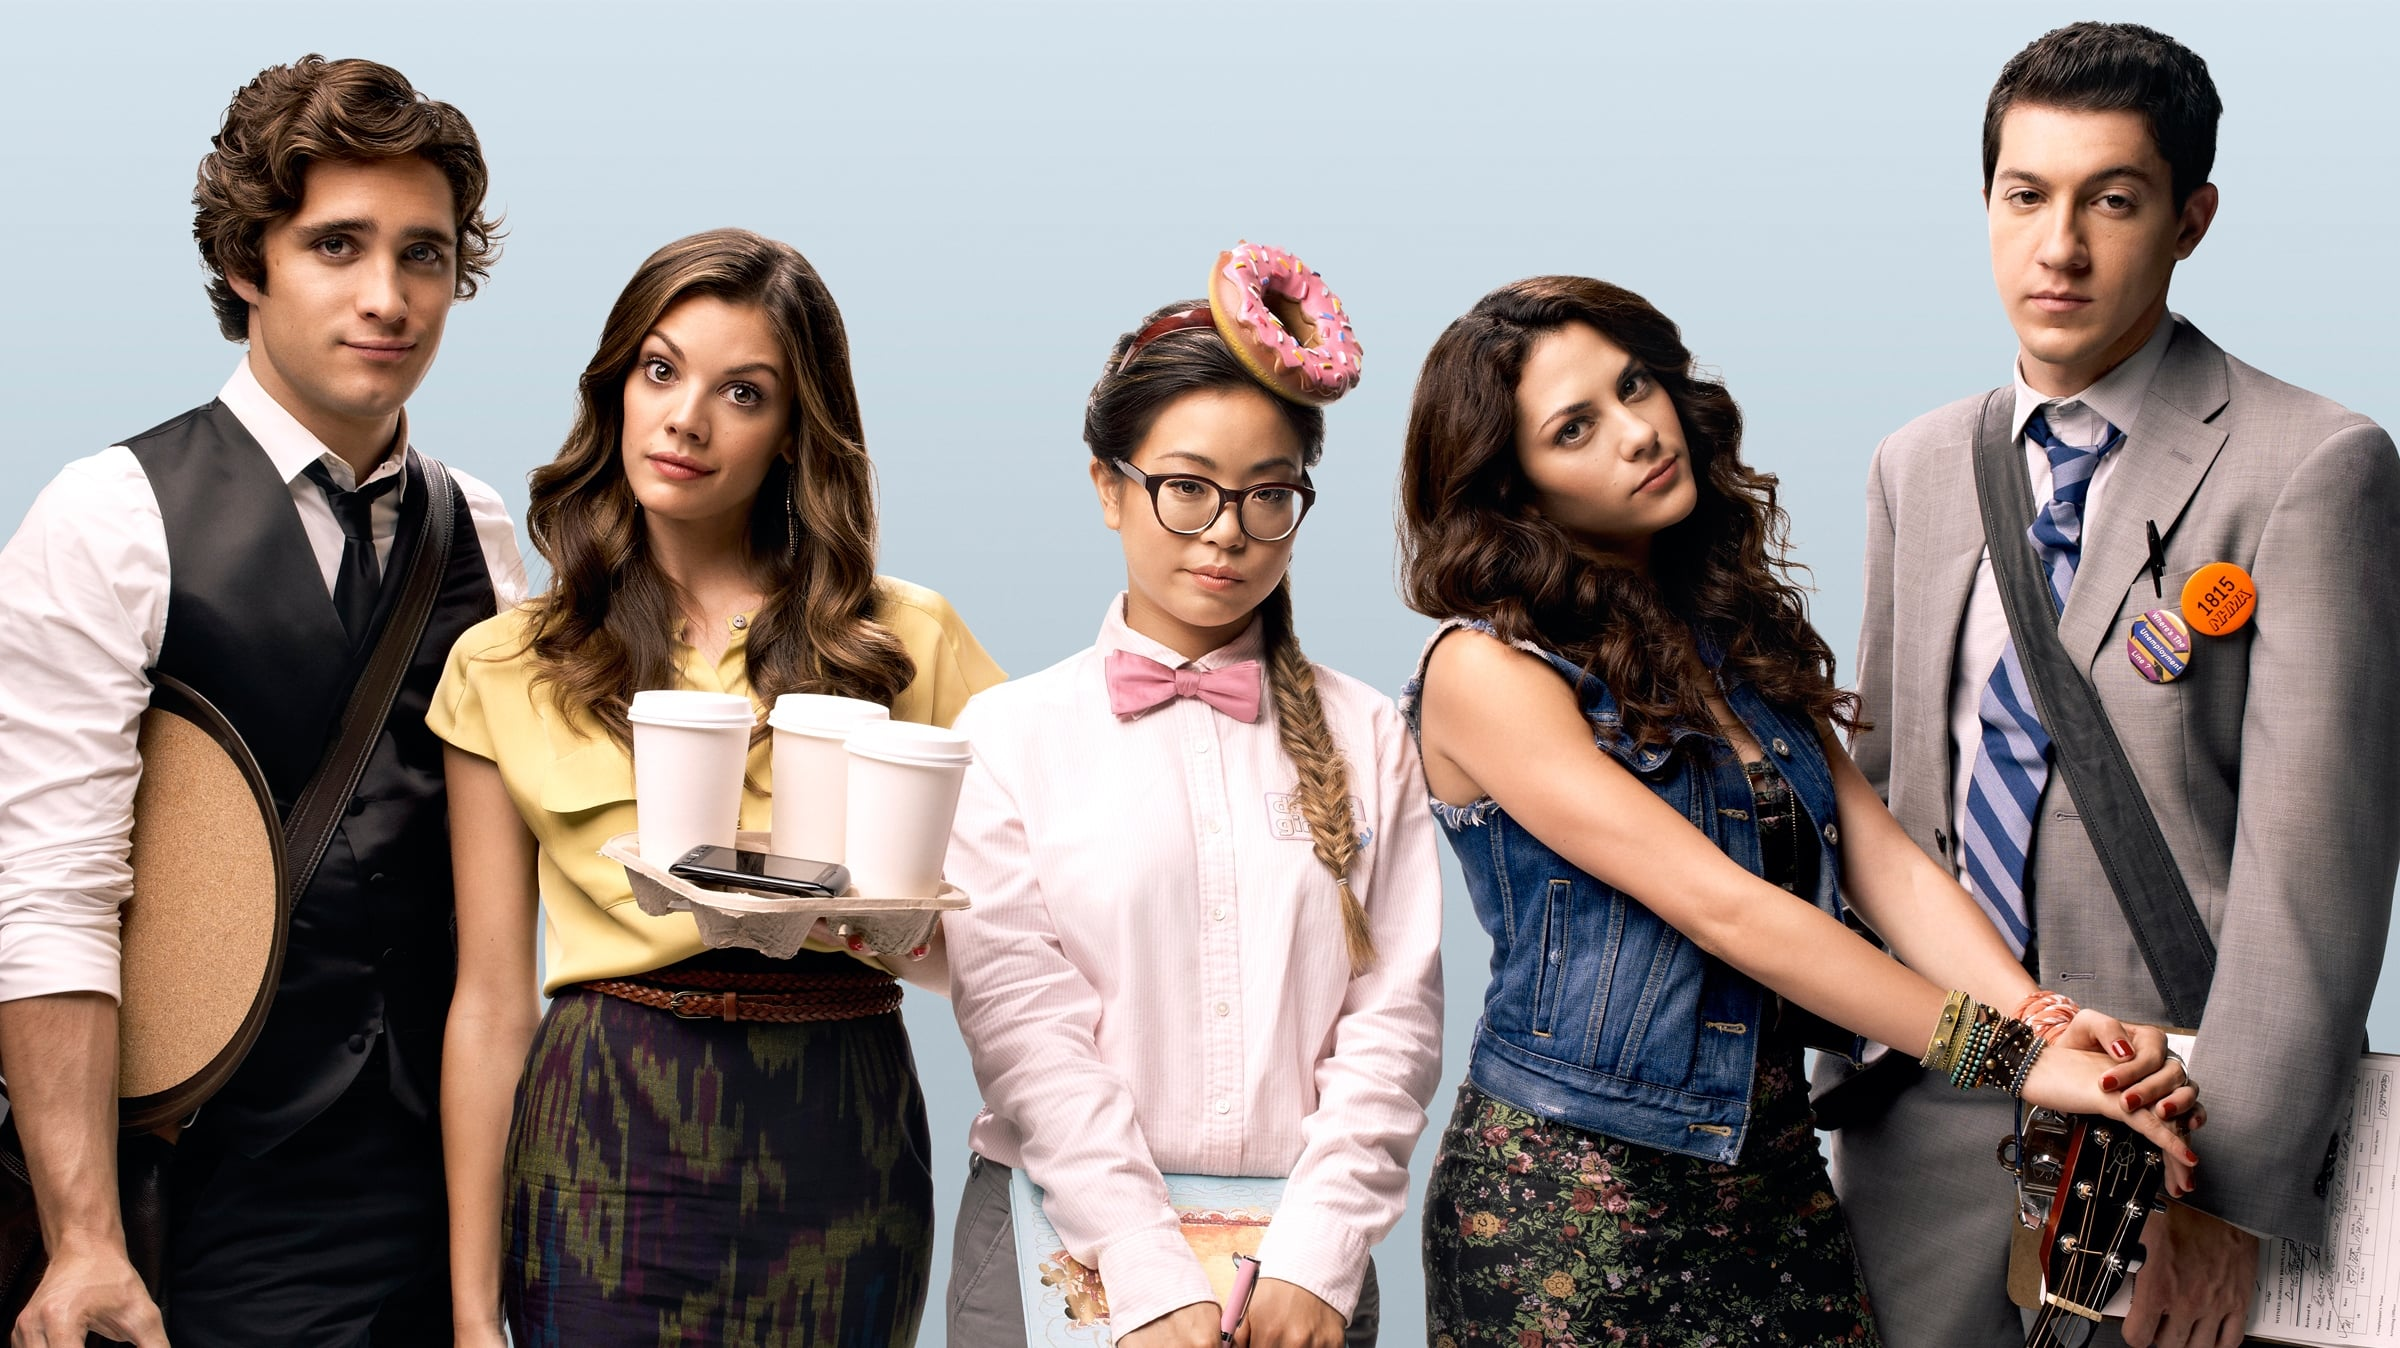 "From Emmy-nominated producer Craig Wright (""Dirty Sexy Money,"" ""Six Feet Under""), MTV's new scripted comedic drama ""Underemployed"" follows a group a five friends--Sophia, Daphne, Lou, Raviva and Miles--all filled with lofty goals, romantic dreams and hopefulness for complete world domination on their road to adulthood. But what happens when things don't go exactly according to plan? ""Underemployed"" picks up one year after their college graduation when reality has set in and the group struggles, often comically, to stay optimistic through the major life changes young twentysomethings know all too well, including dead-end jobs, terrible bosses and romantic mistakes. This group of old friends becomes a new family as they go through all the highs and lows in their newfound adult lives and prove together that if life is about living, none of them are underemployed. The series, which is currently in production in Chicago, will feature 12 hour-long episodes and is slated to launch in fall 2012. Sophia struggles to hold on to her dreams of becoming a writer, as she serves maple bacon bars at Donut Girl, while Daphne continues to toil as an unpaid and unnoticed intern at an advertising agency. Lou and Raviva ended their relationship when she left for Los Angeles to become a famous singer, leaving Lou on his quest to save the environment, but all that changes when she shows up on his doorstep nine-months pregnant. Meanwhile, Miles aspires to be a world famous model, the face of a major ad campaign, but instead finds himself serving mojitos and mini-tacos in his skivvies."